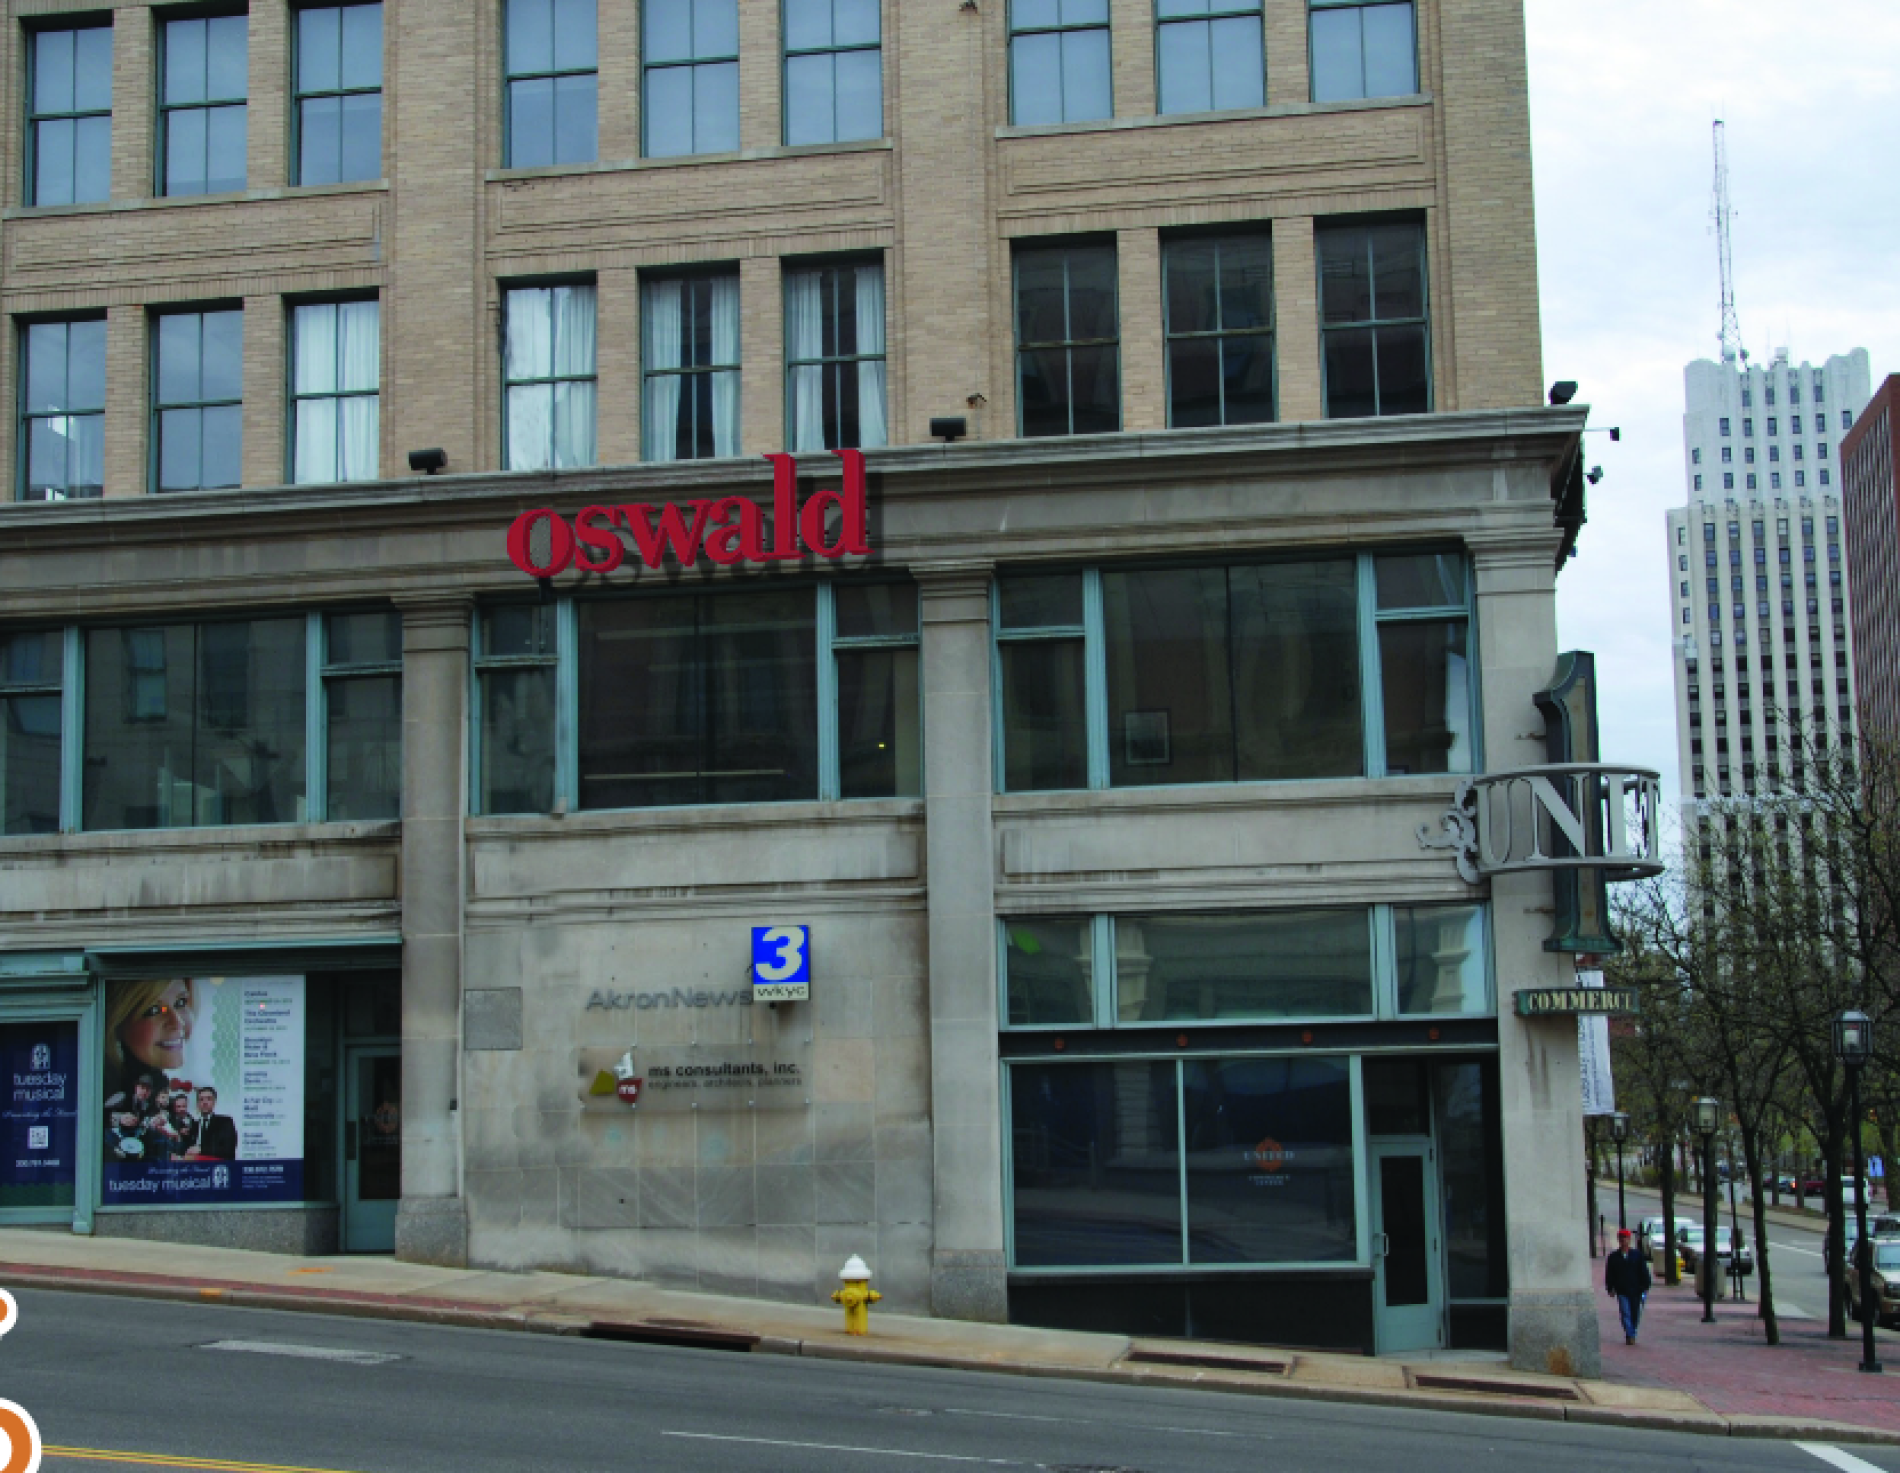 View of Oswald Companies Akron Branch